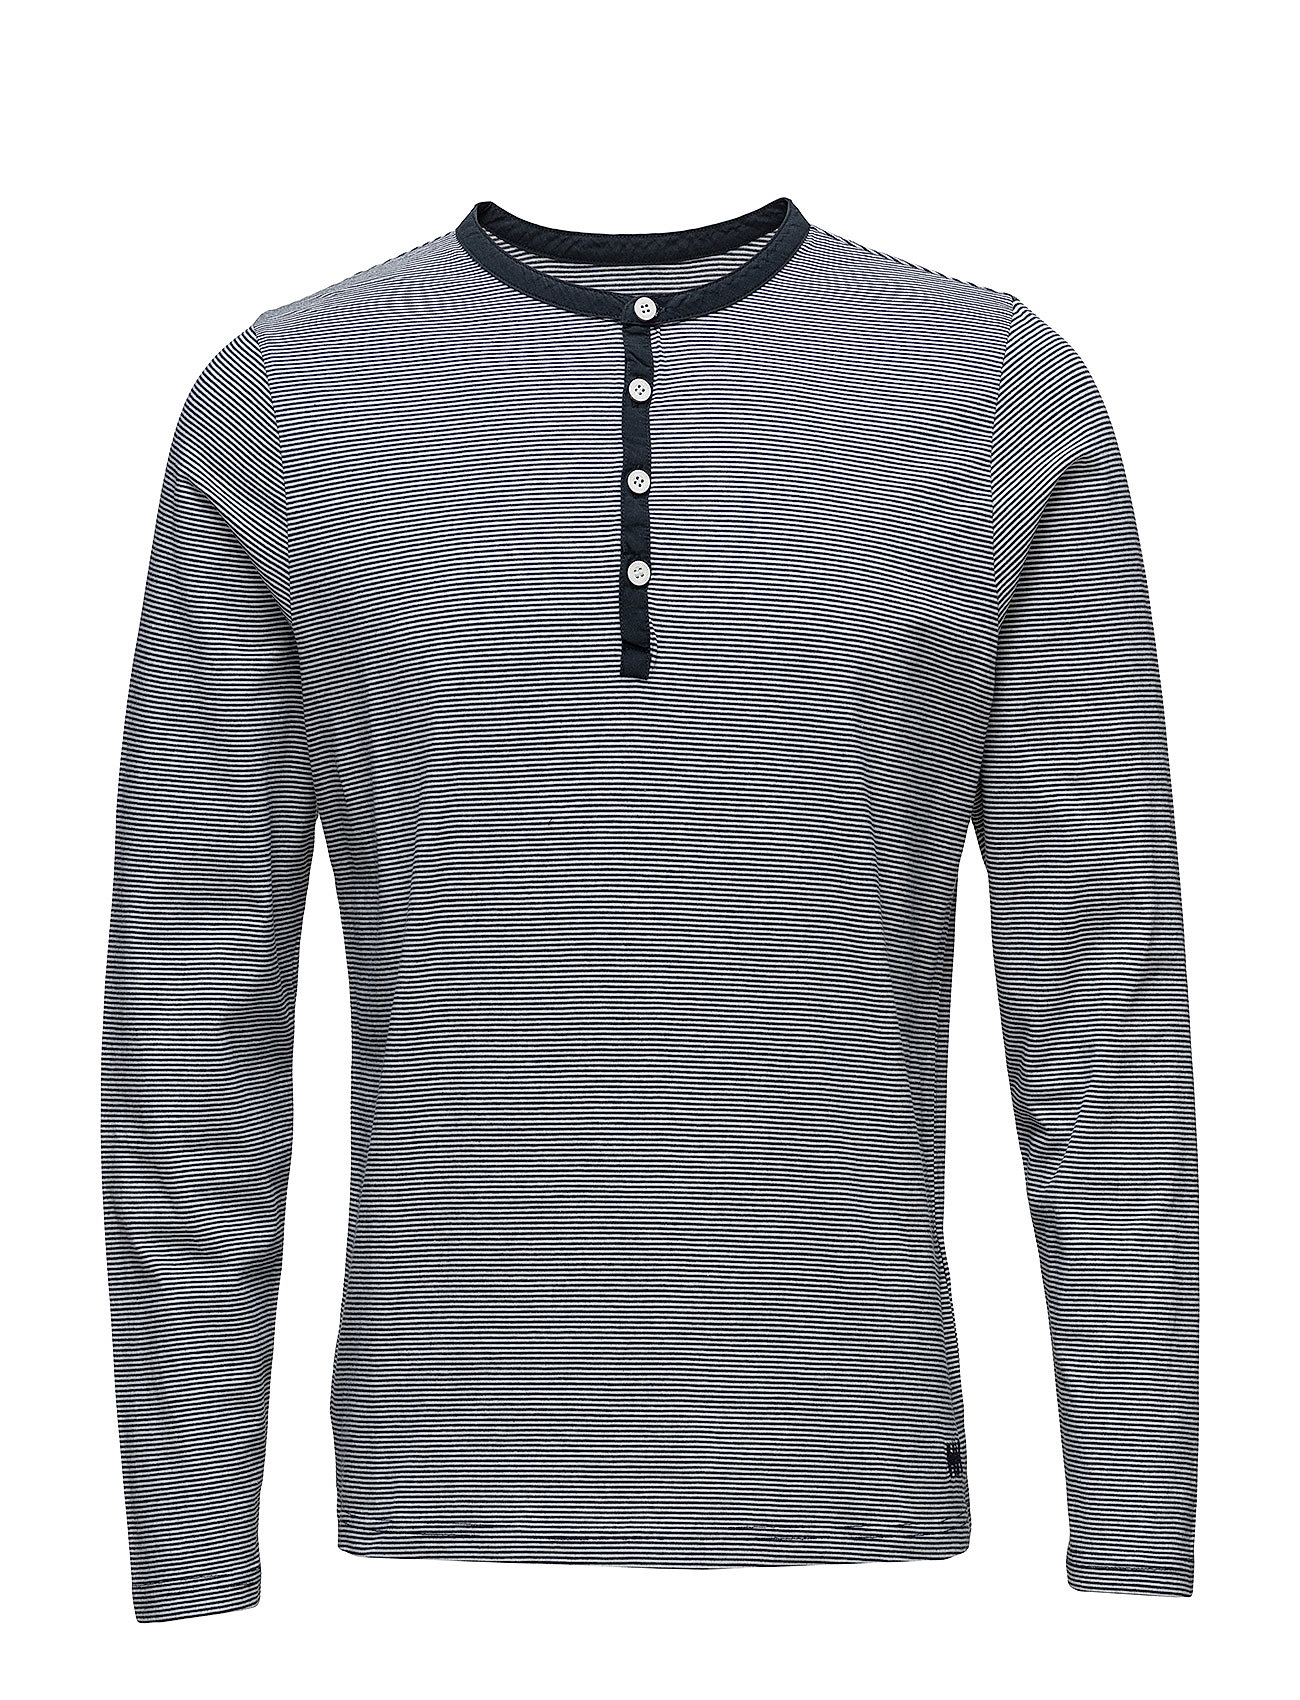 Helly Hansen FJORD HENLEY - 596 NAVY MICRO STRIPES